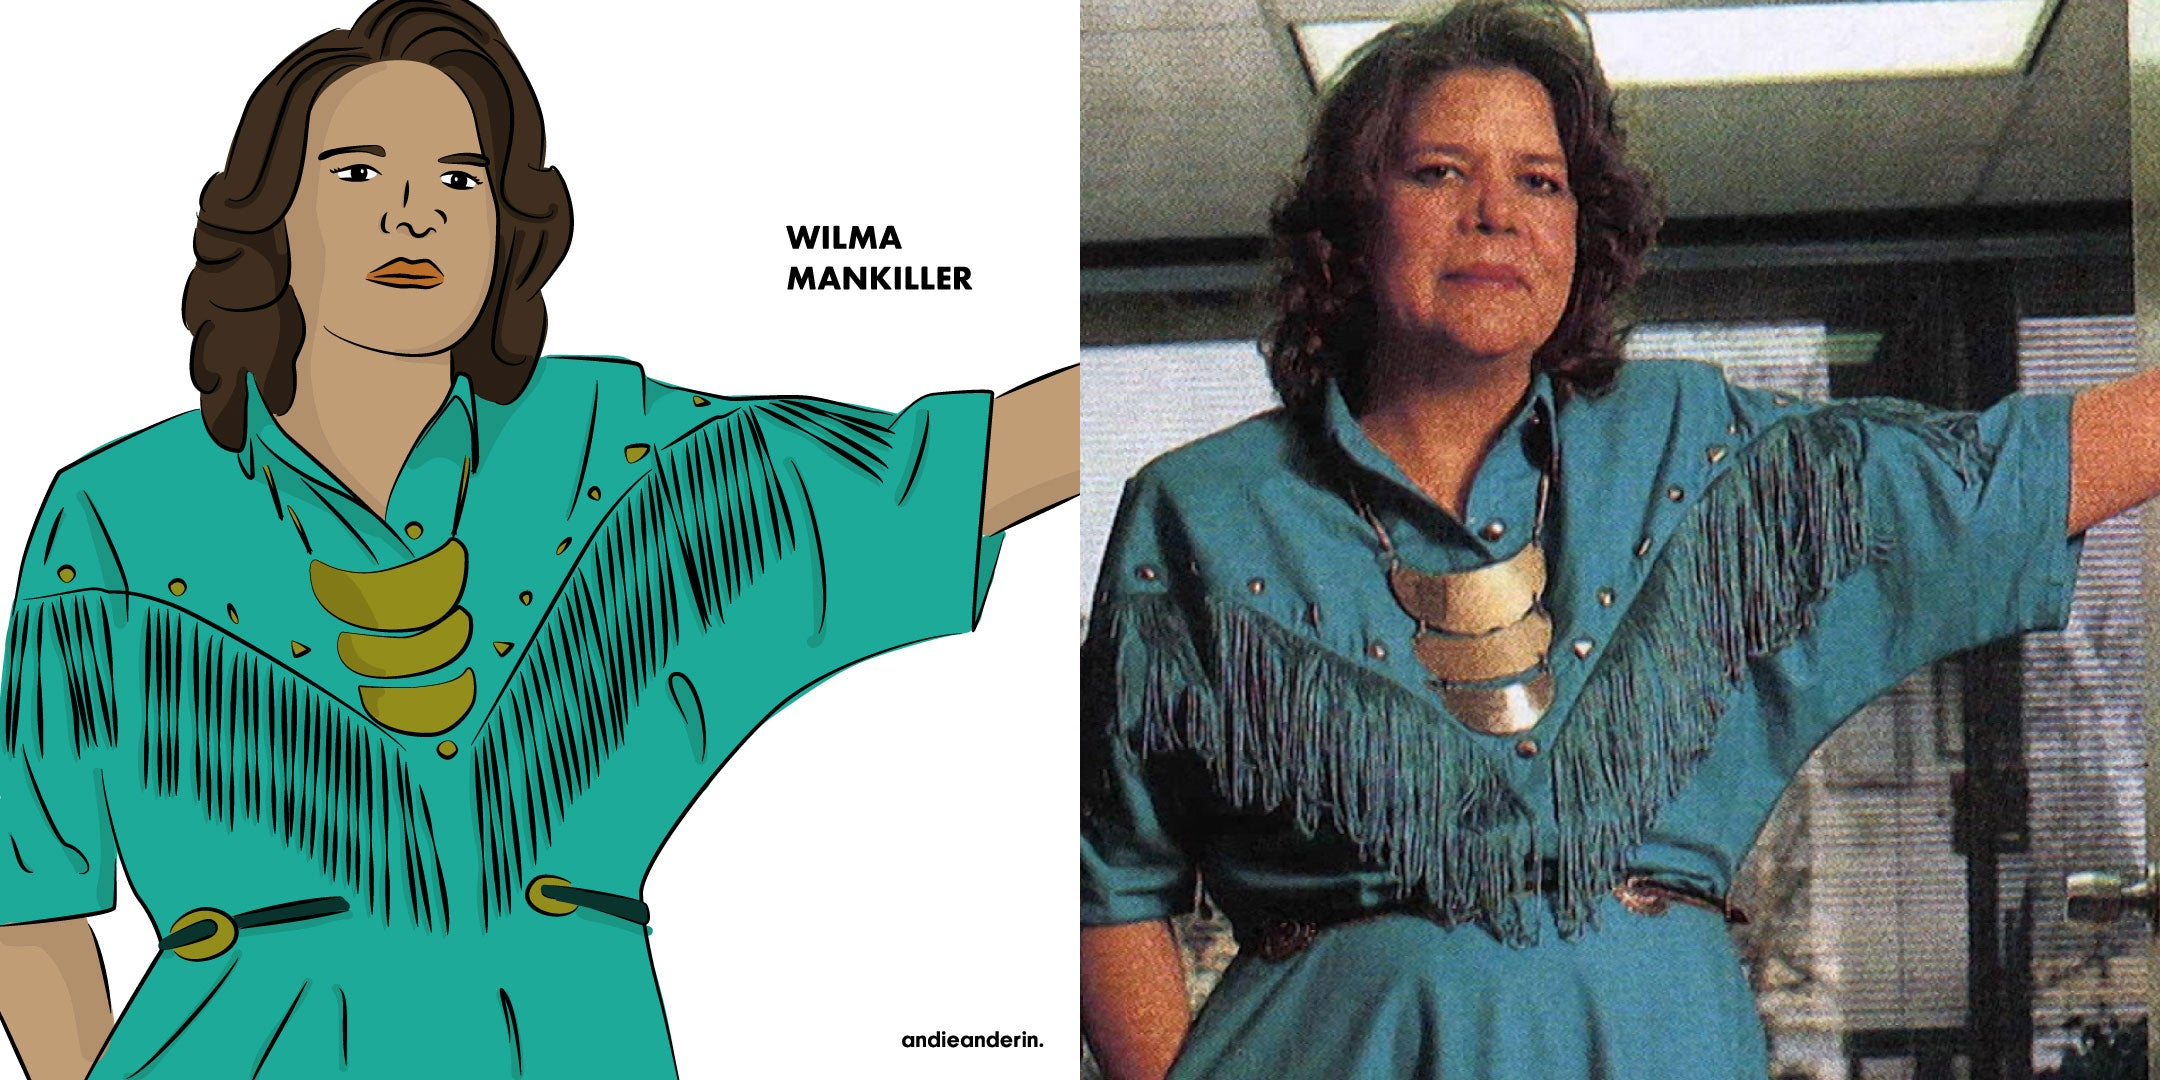 andieanderin-influential-women-of-color-wilma-mankiller